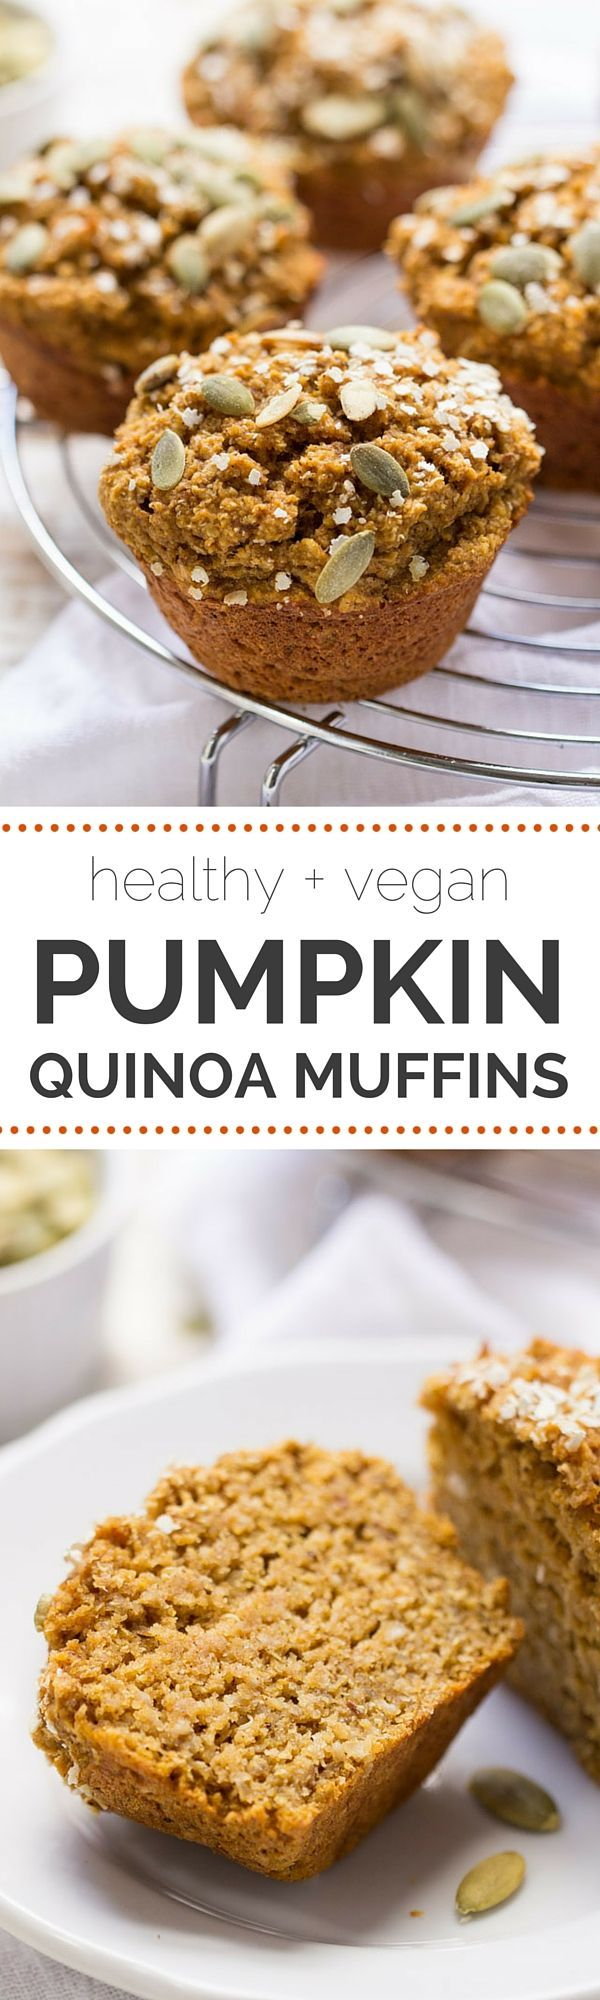 ... Pumpkin on Pinterest | Pumpkins, Pumpkin spice muffins and Chocolate